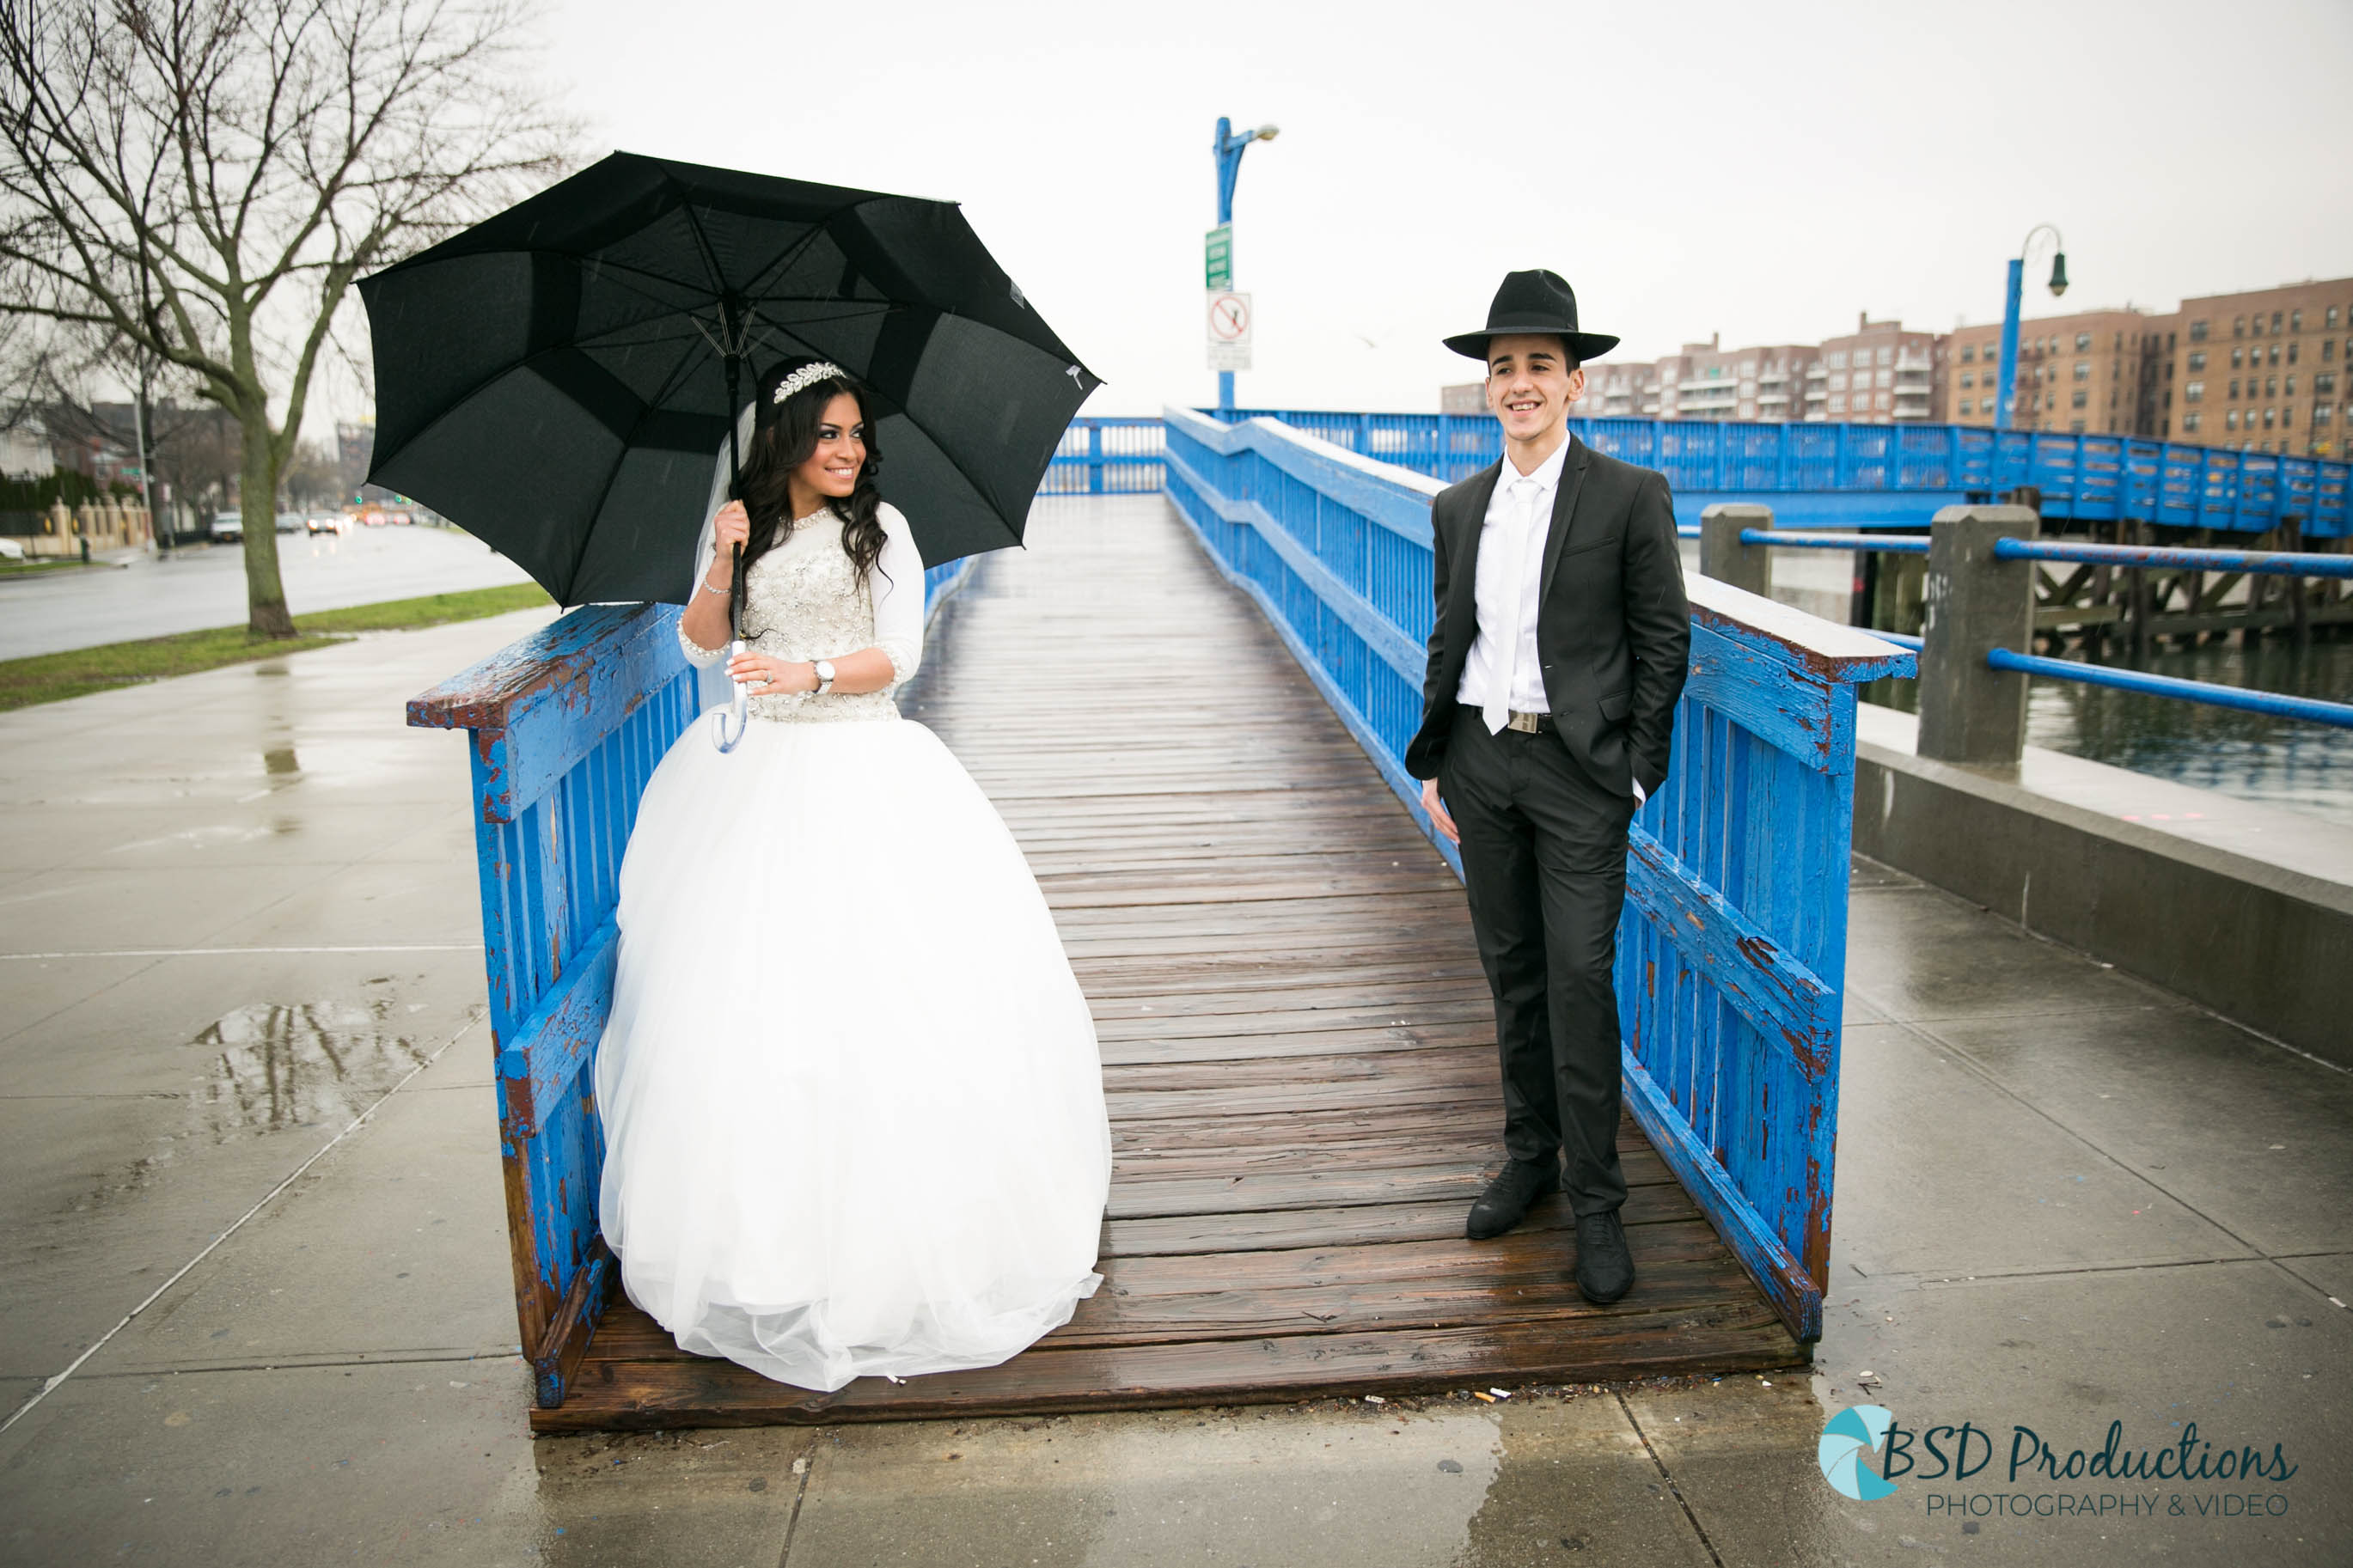 UH5A8781 Wedding – BSD Productions Photography